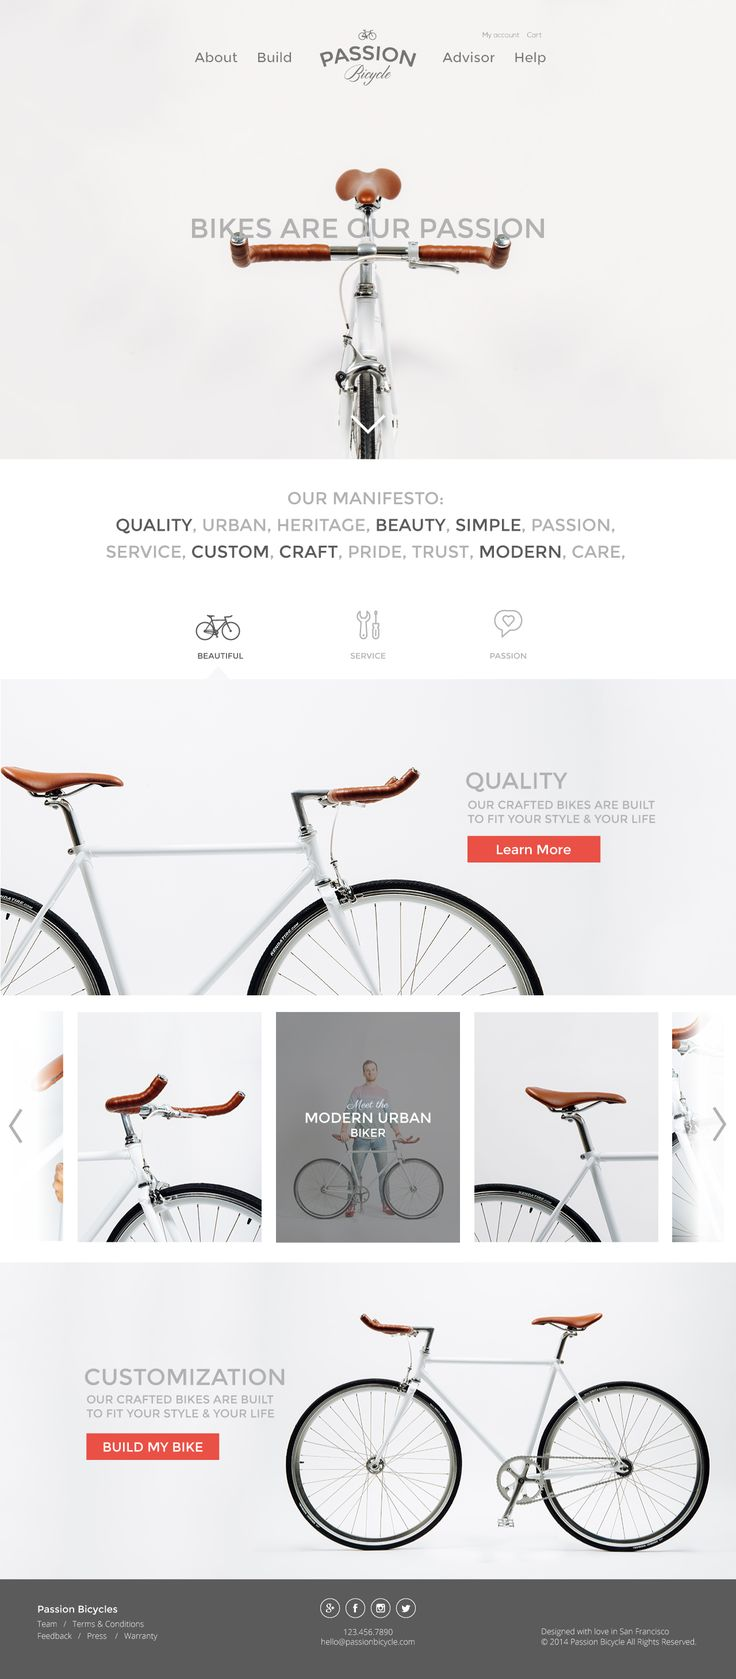 Dribbble - passionbicyclemockupfinal1.jpg by JJ Lee